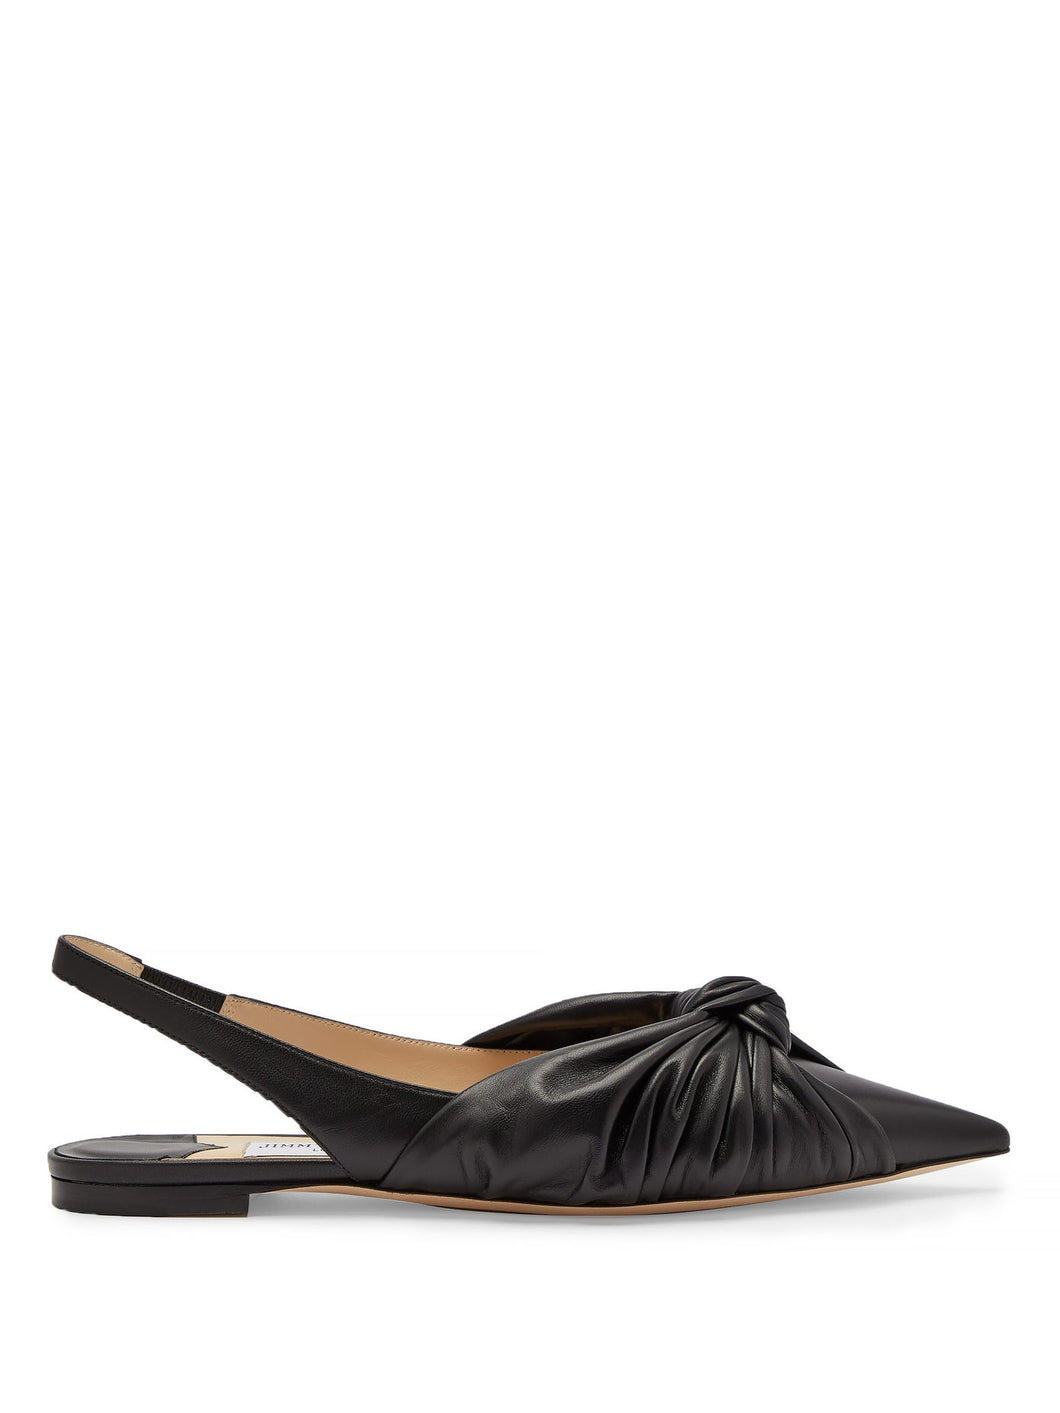 Annabelle knot-front leather slingback flats